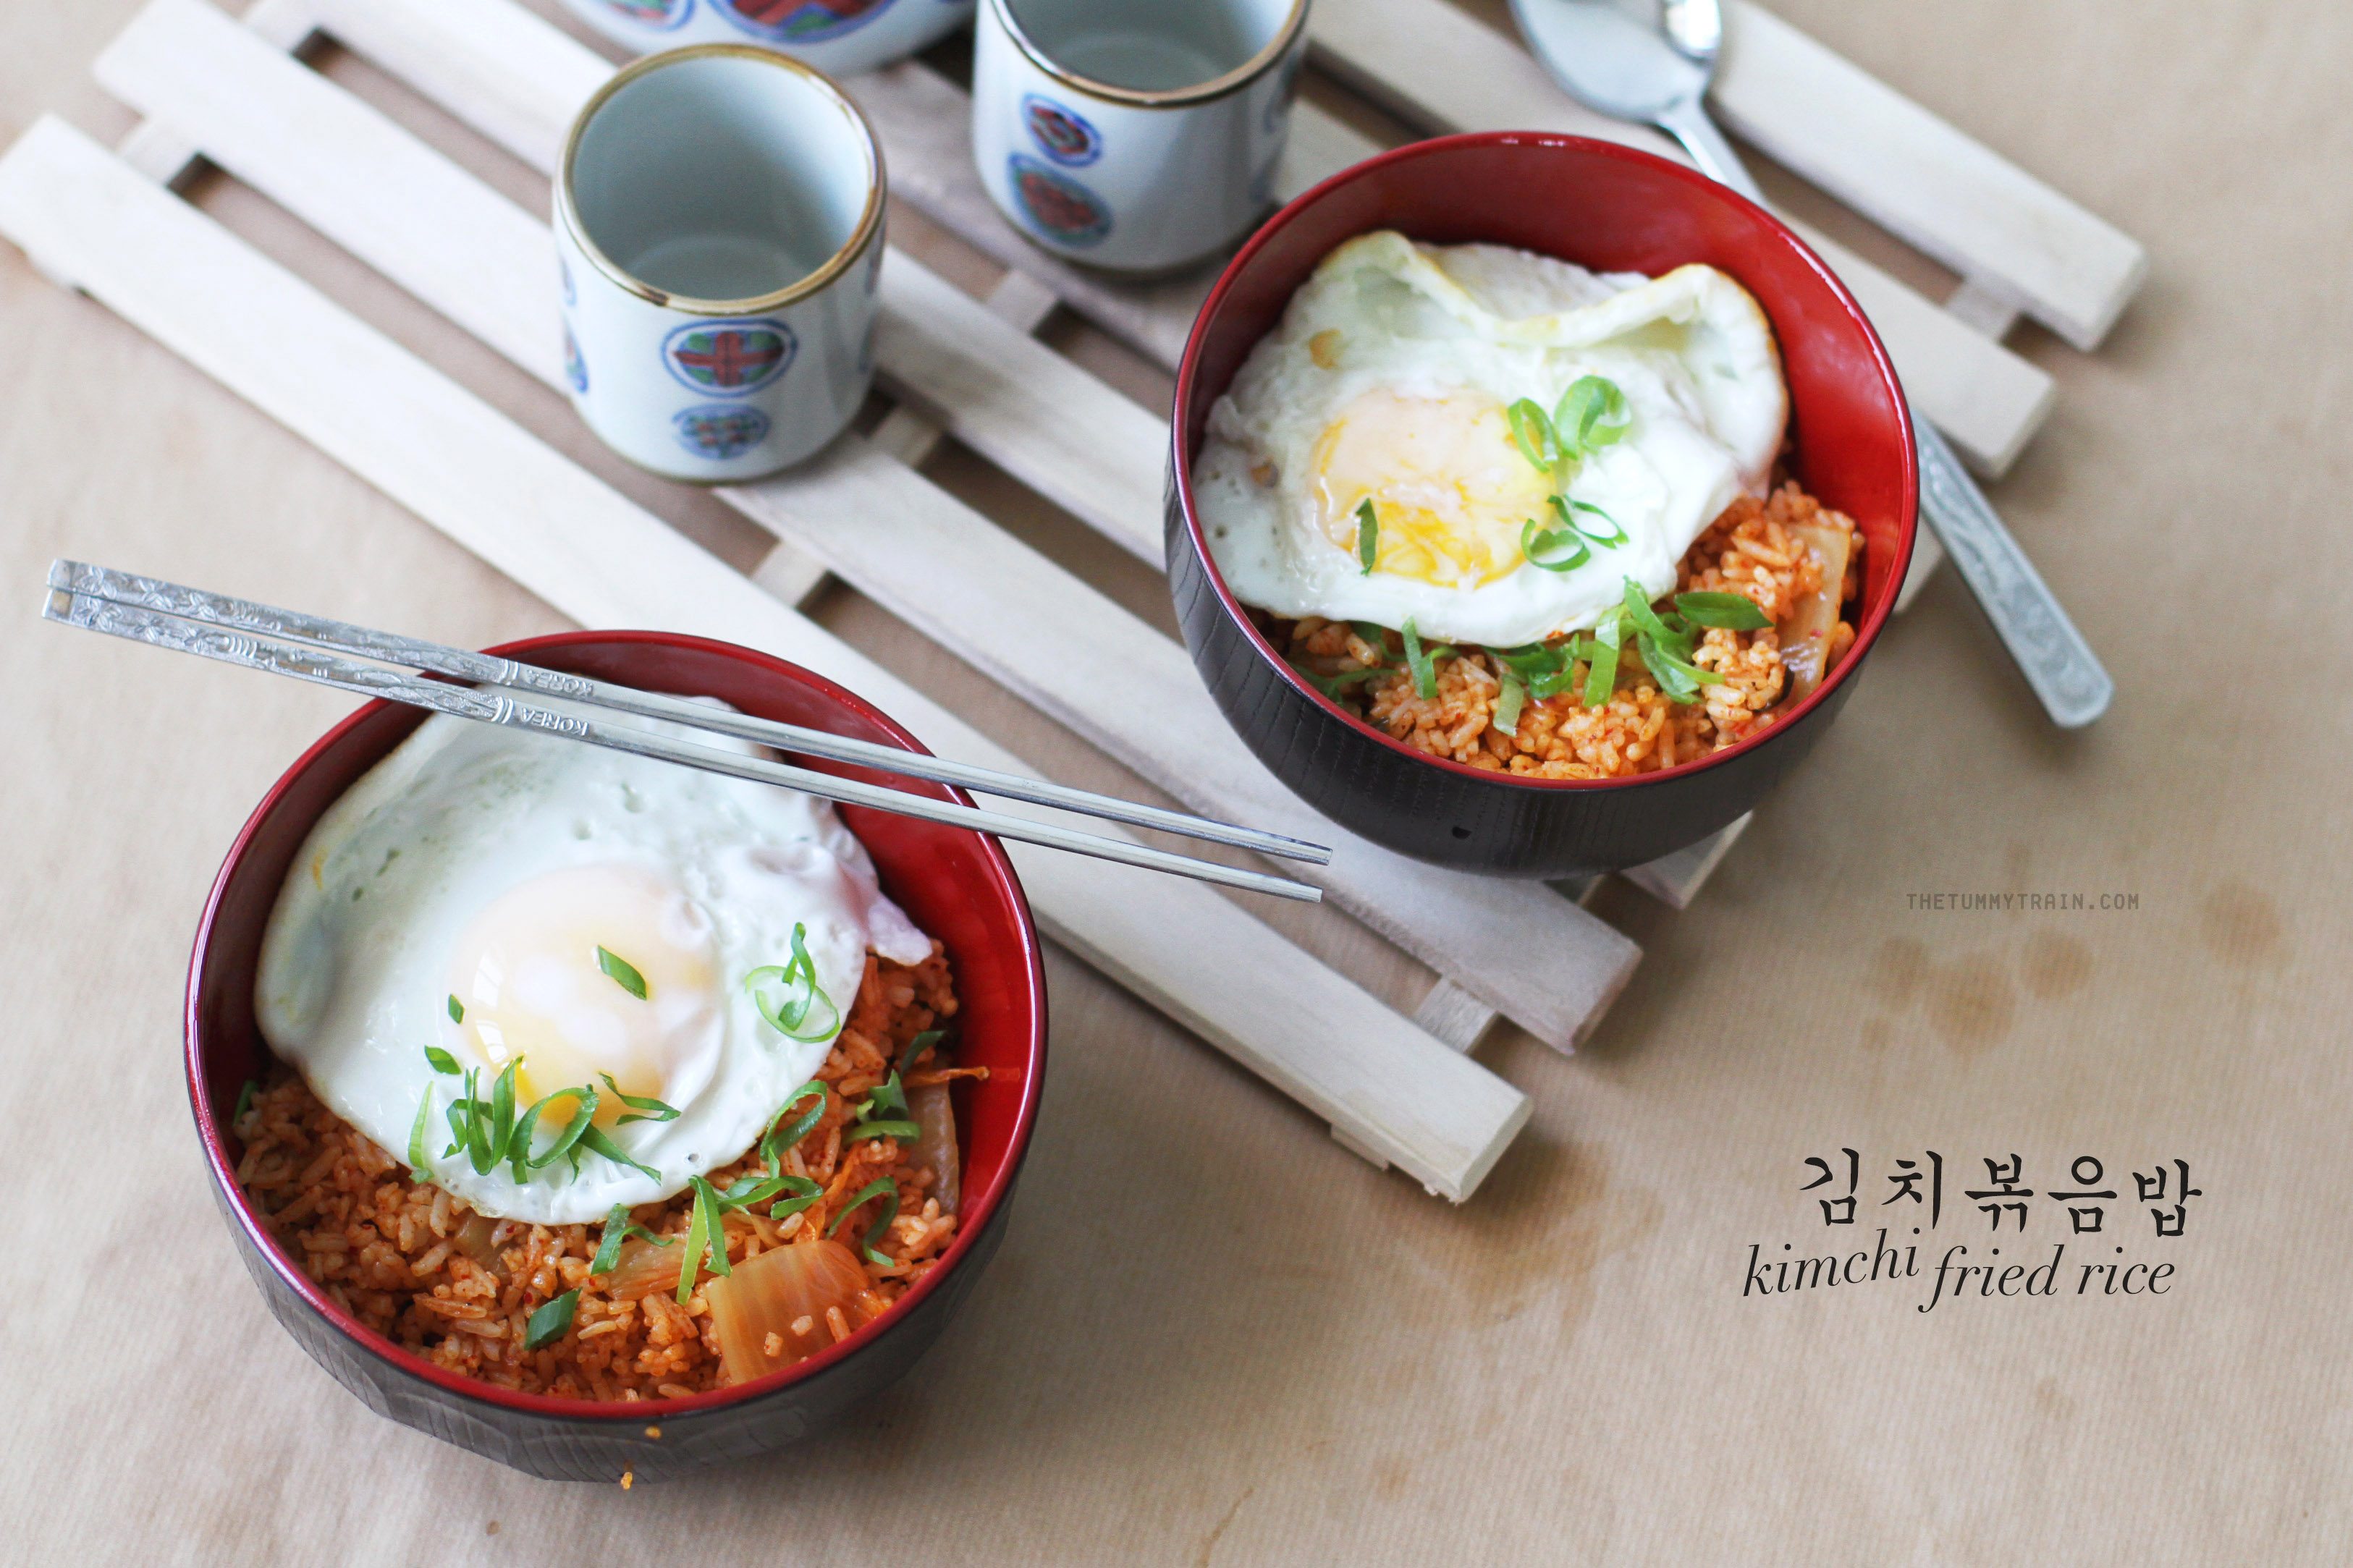 Kimchi Fried Rice 1 - Let's cook Kimchi Fried Rice with the help of Petron Gasul!